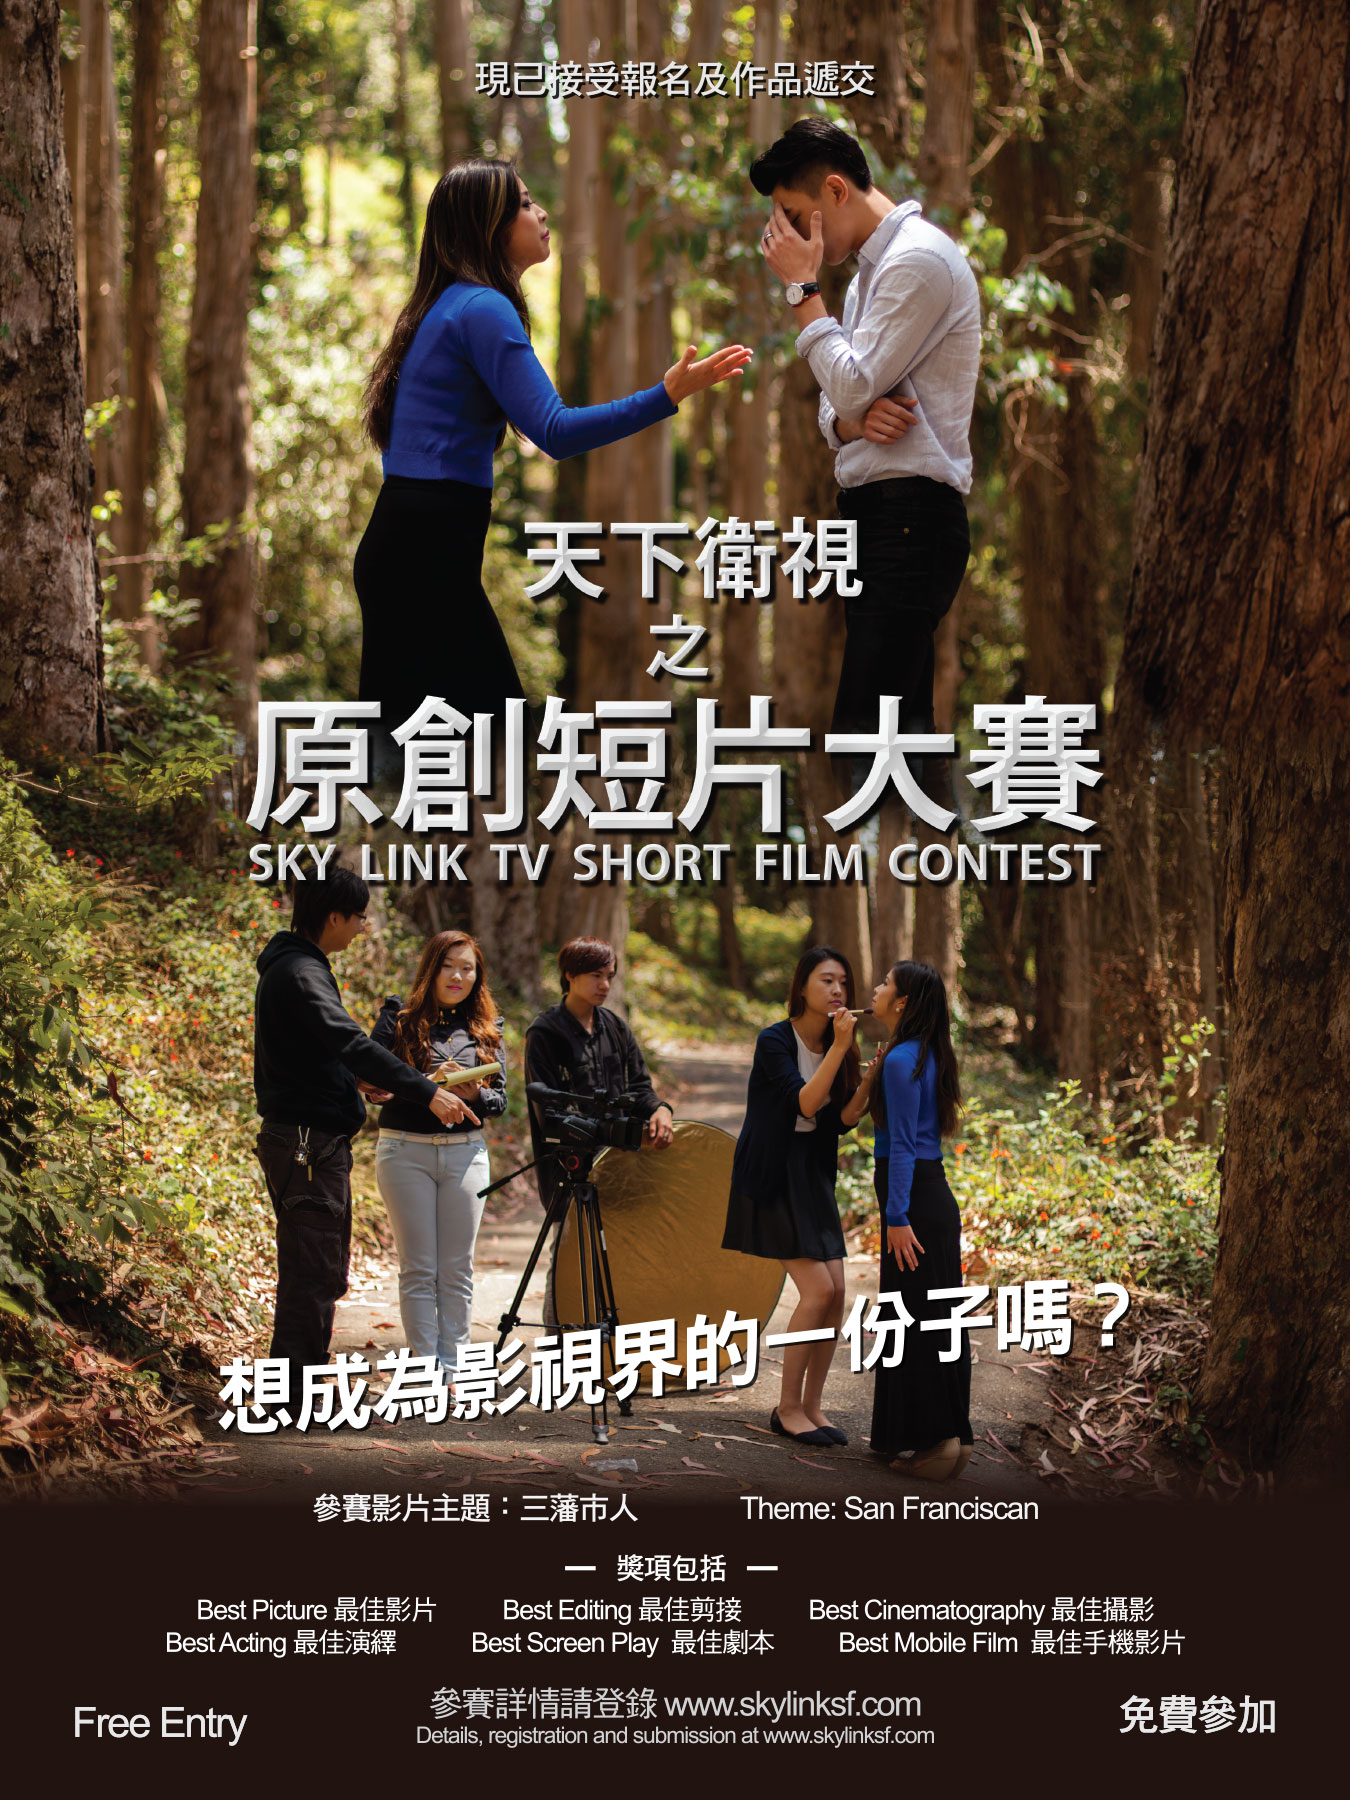 [ON] 2015 Short Film Contest